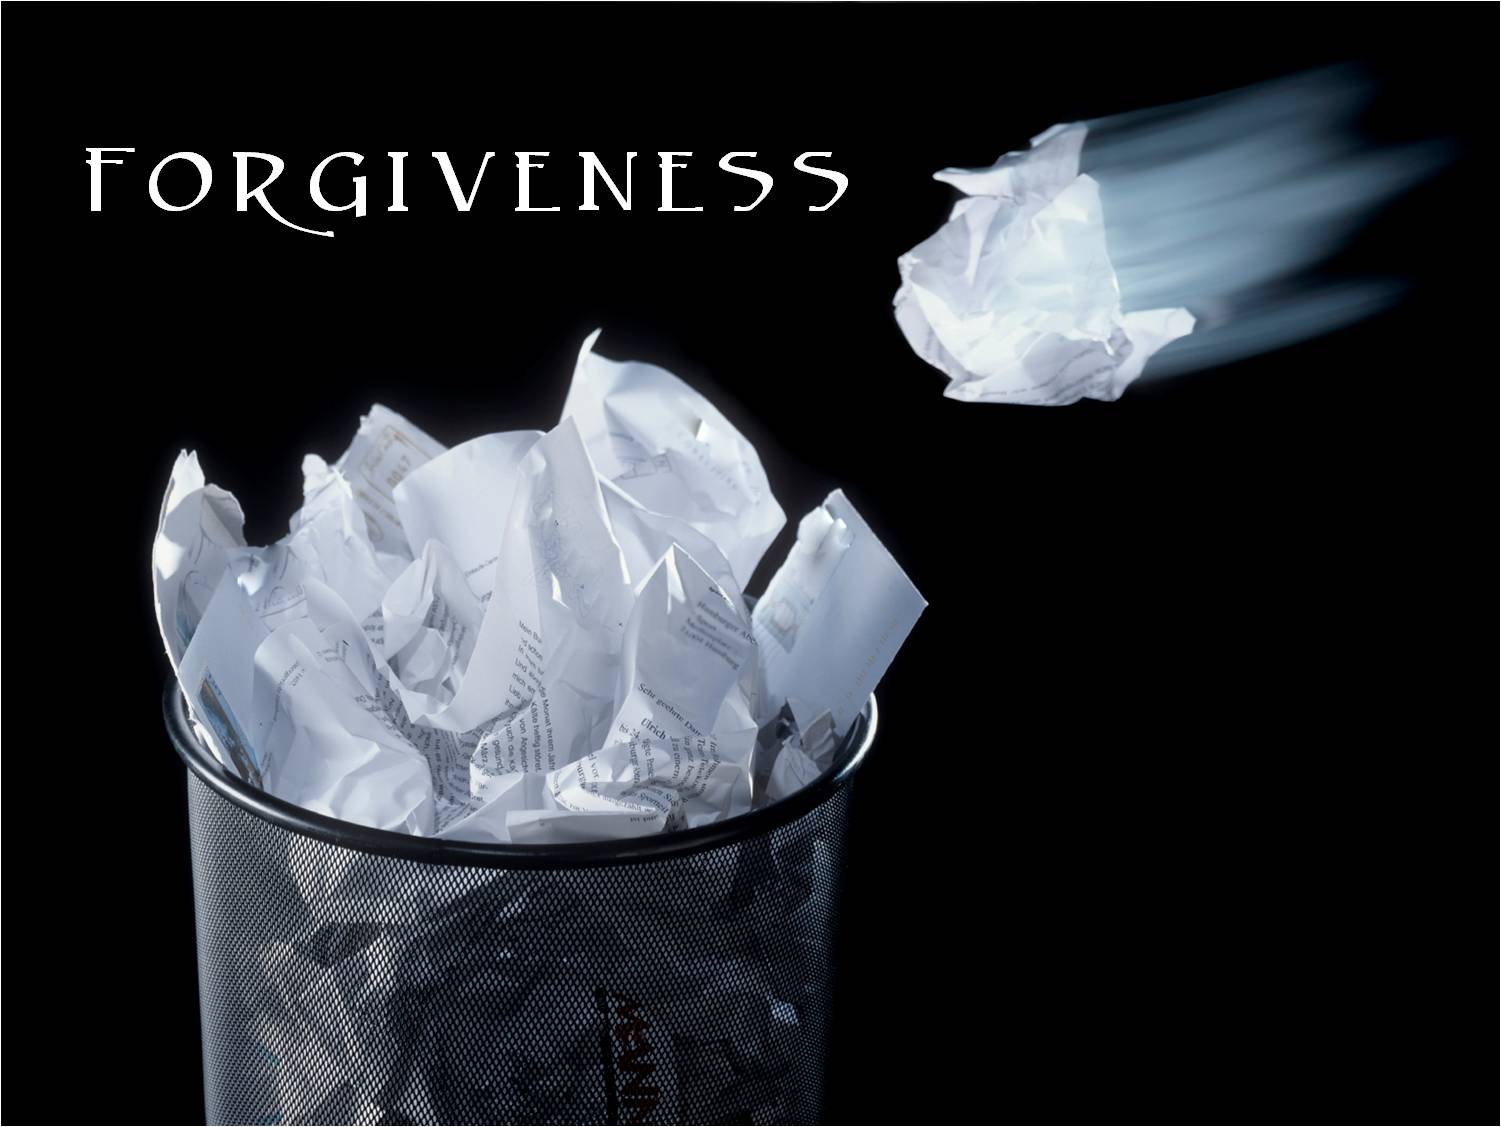 heritage christian university 2011 adequate forgiveness